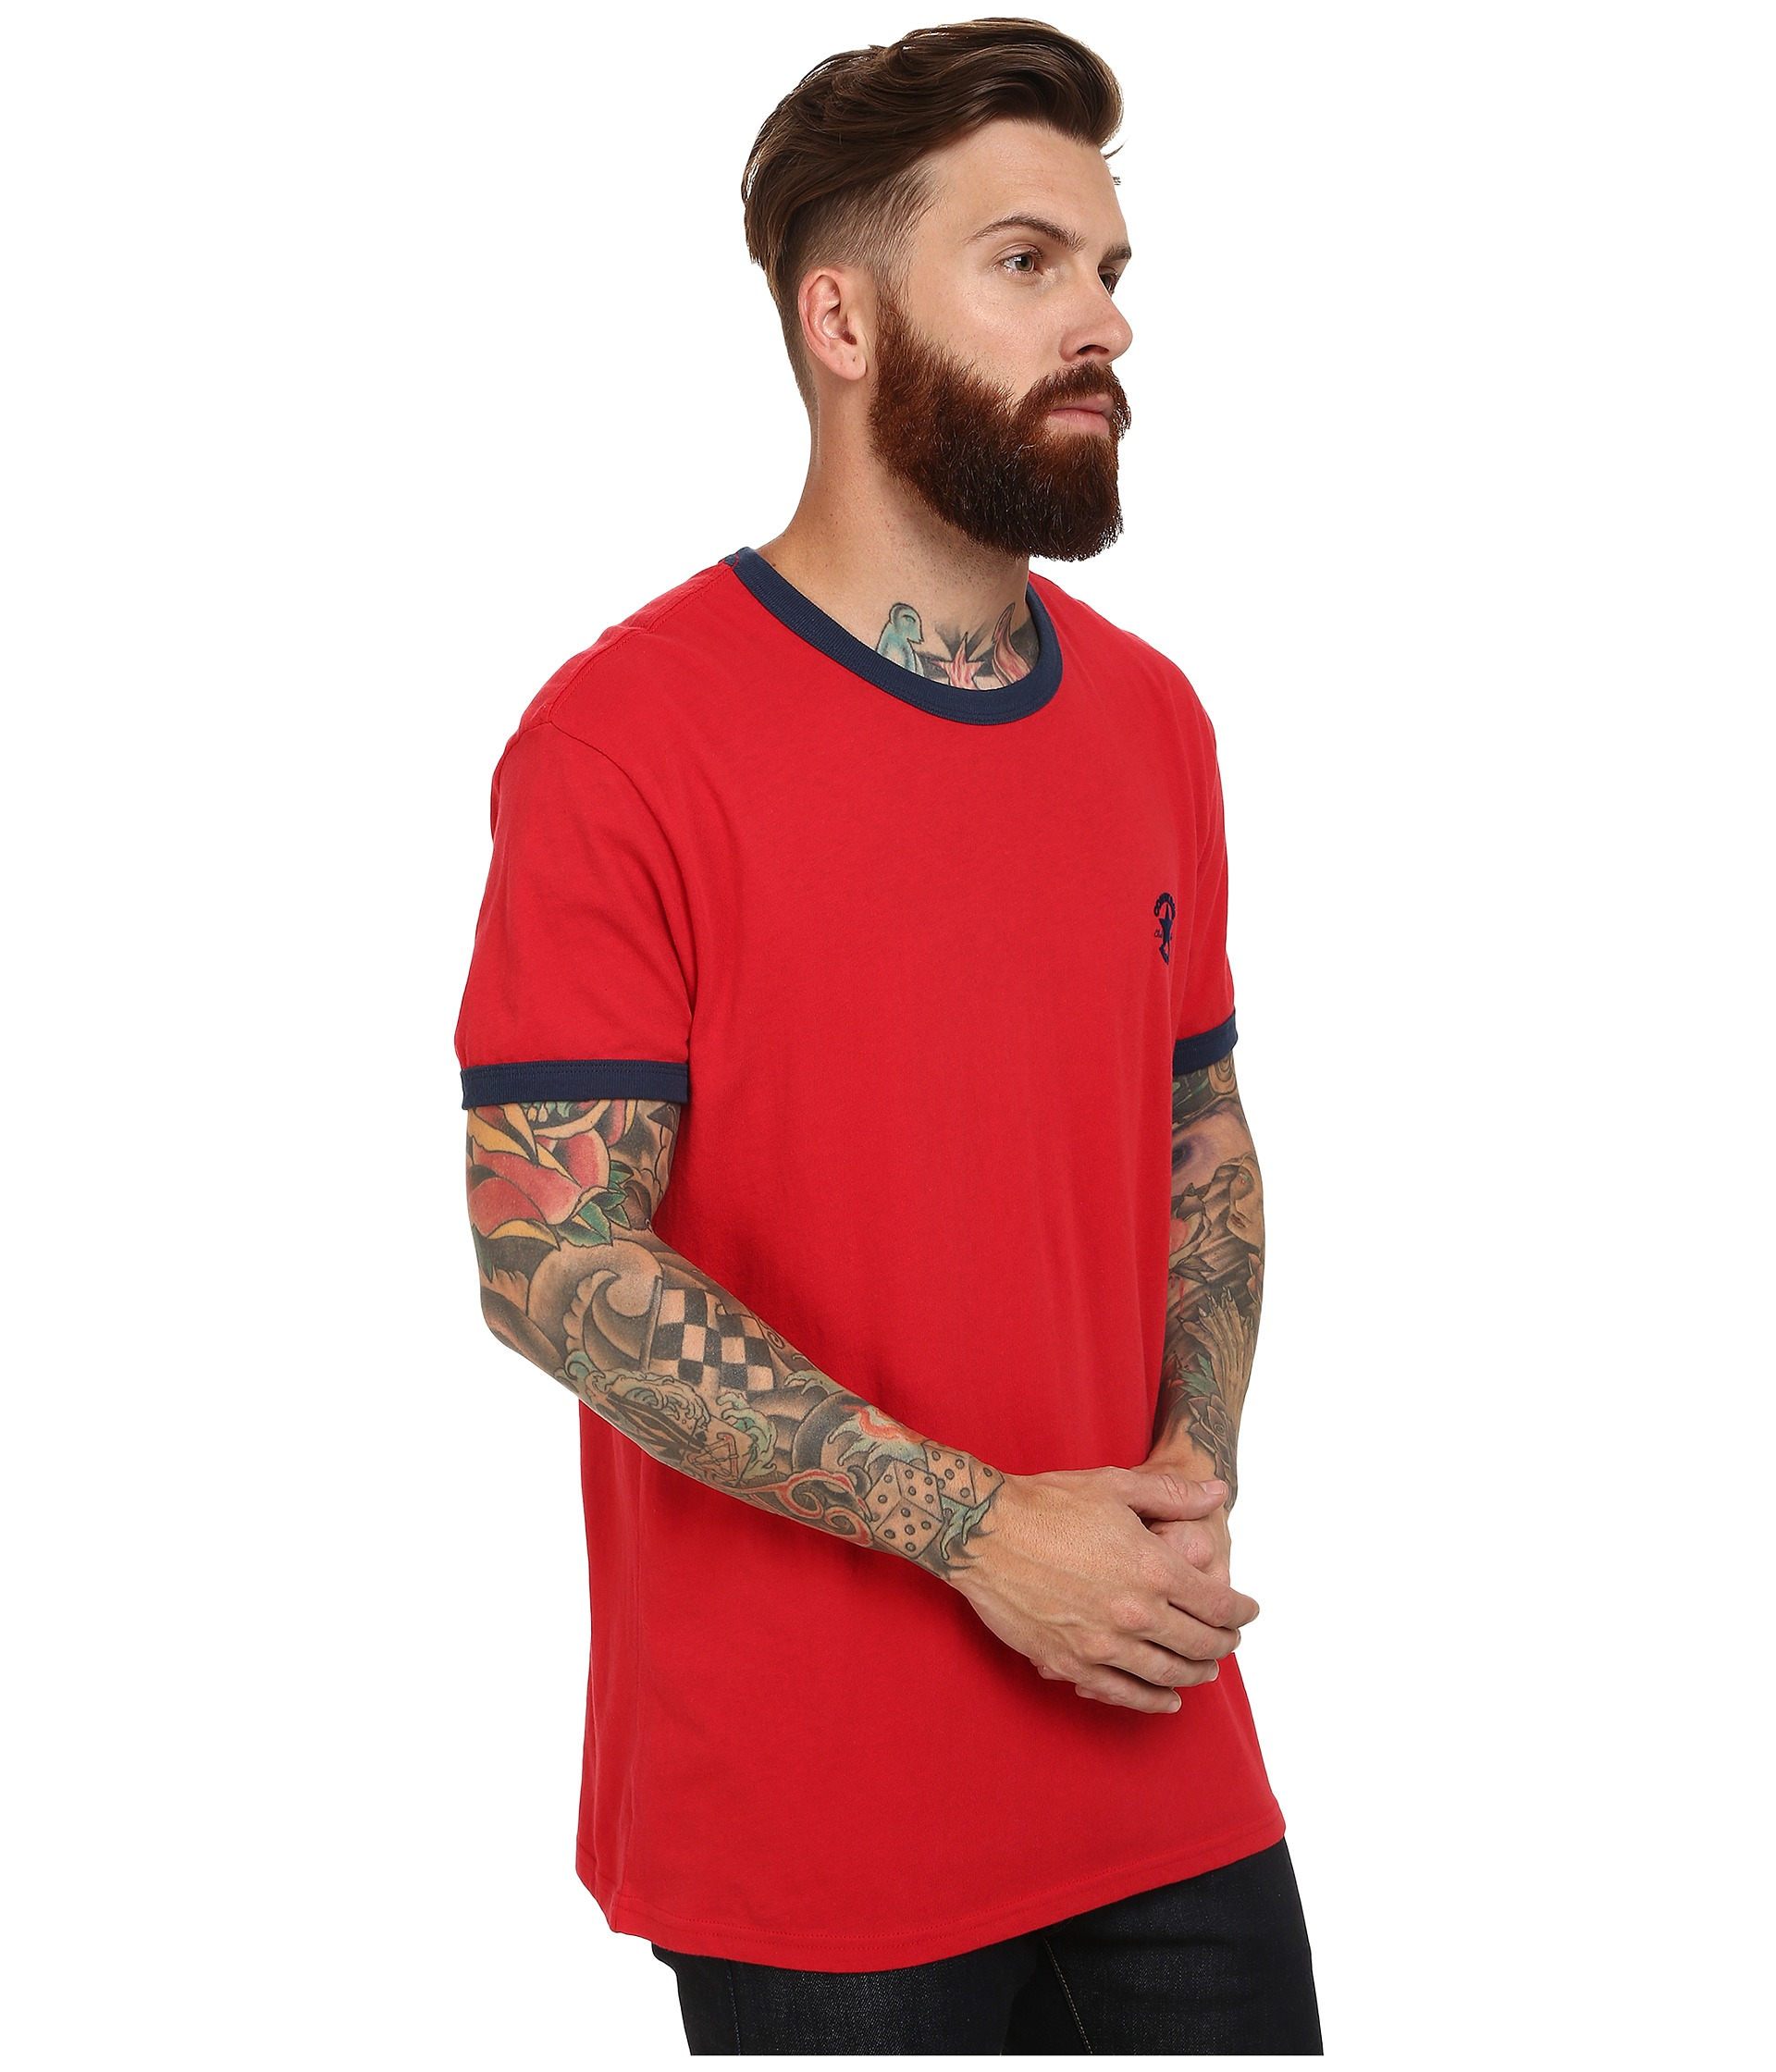 5426687e159af7 Lyst - Converse Chuck Premium Short Sleeve Ringer Tee in Red for Men